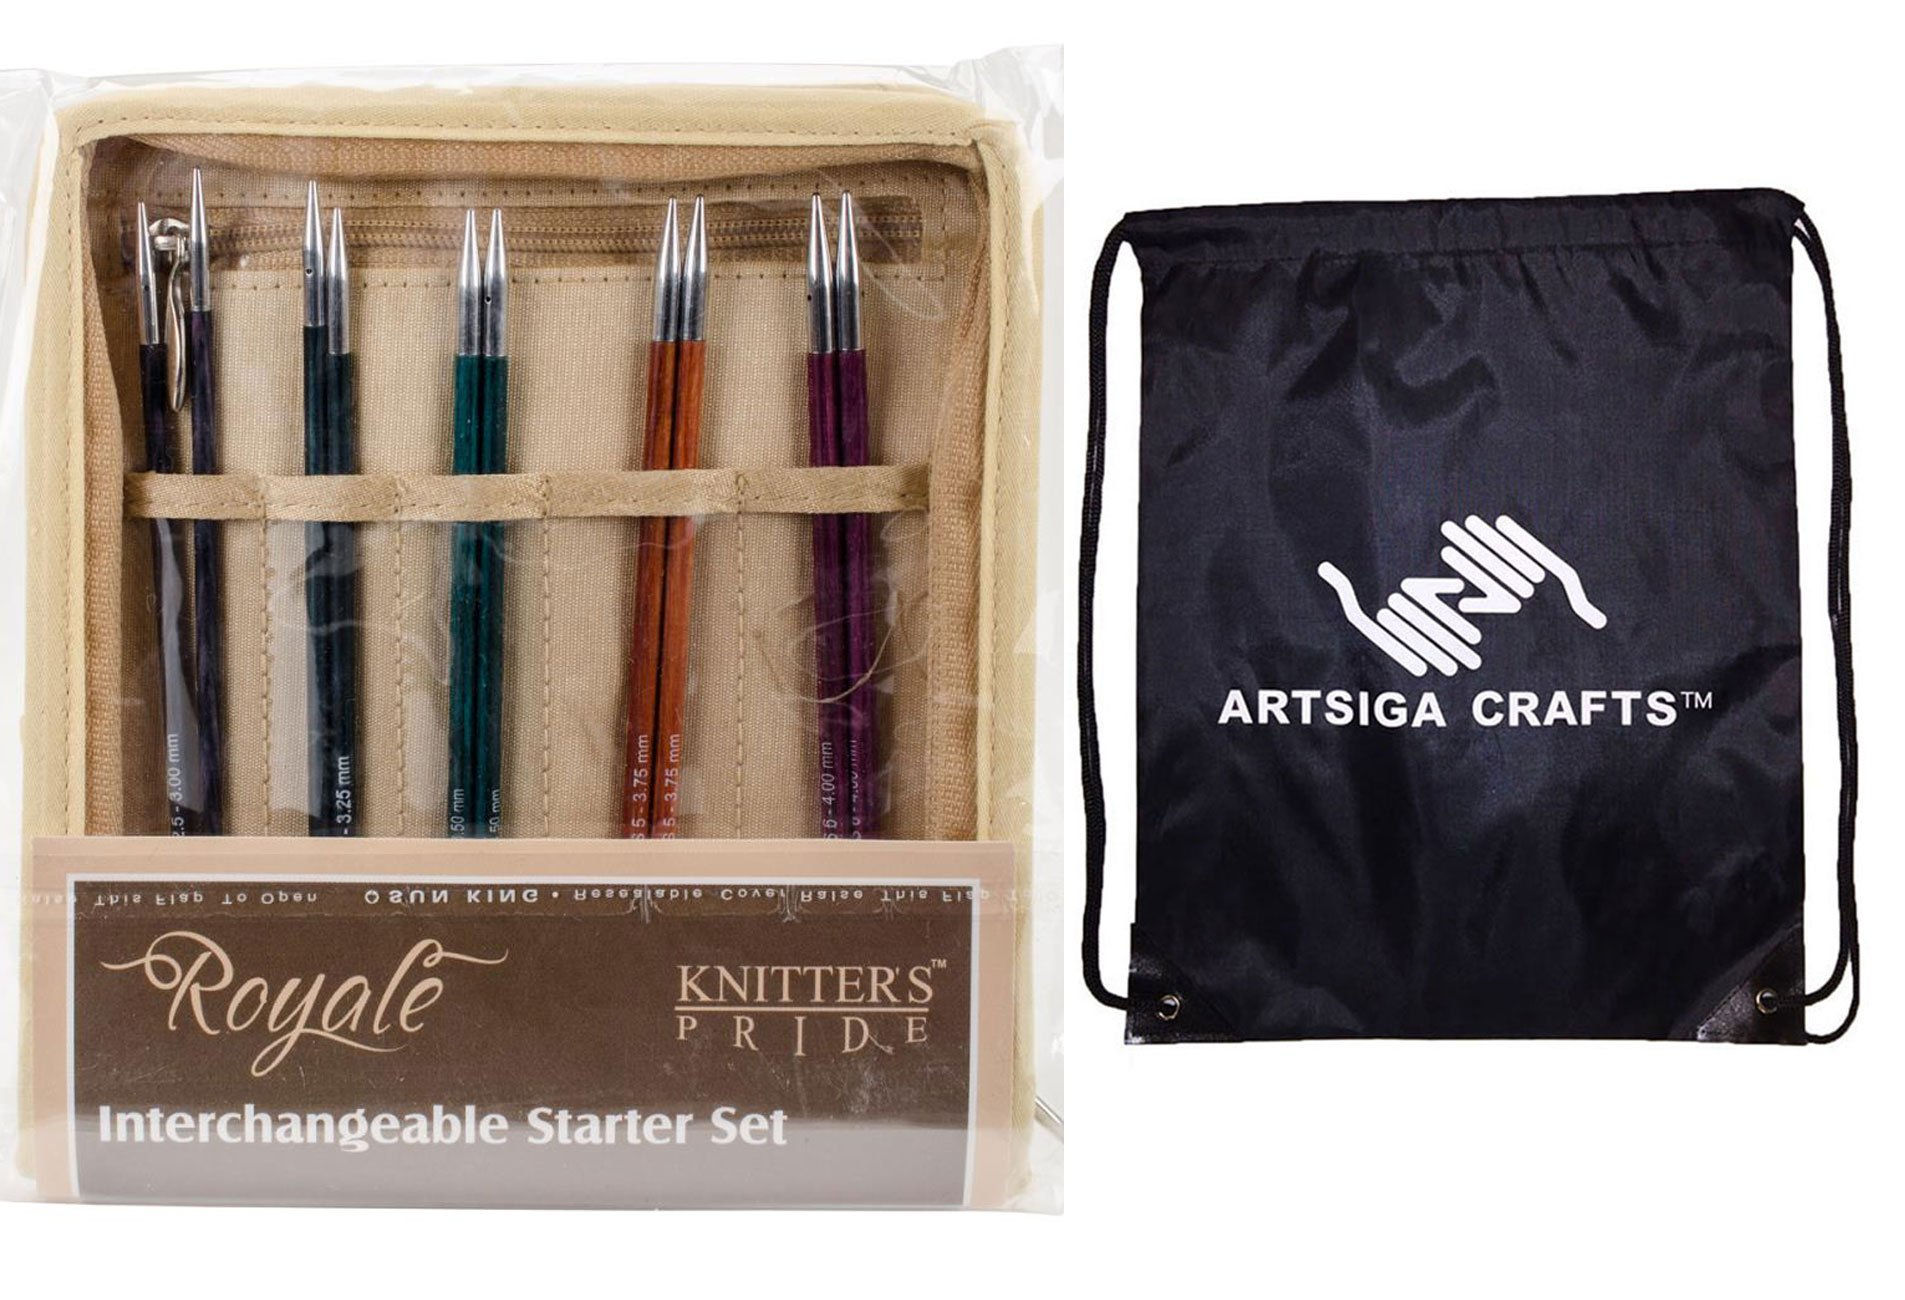 Knitter's Pride Knitting Needles Royale Interchangeable Starter Set Bundle with 1 Artsiga Crafts Project Bag 220353